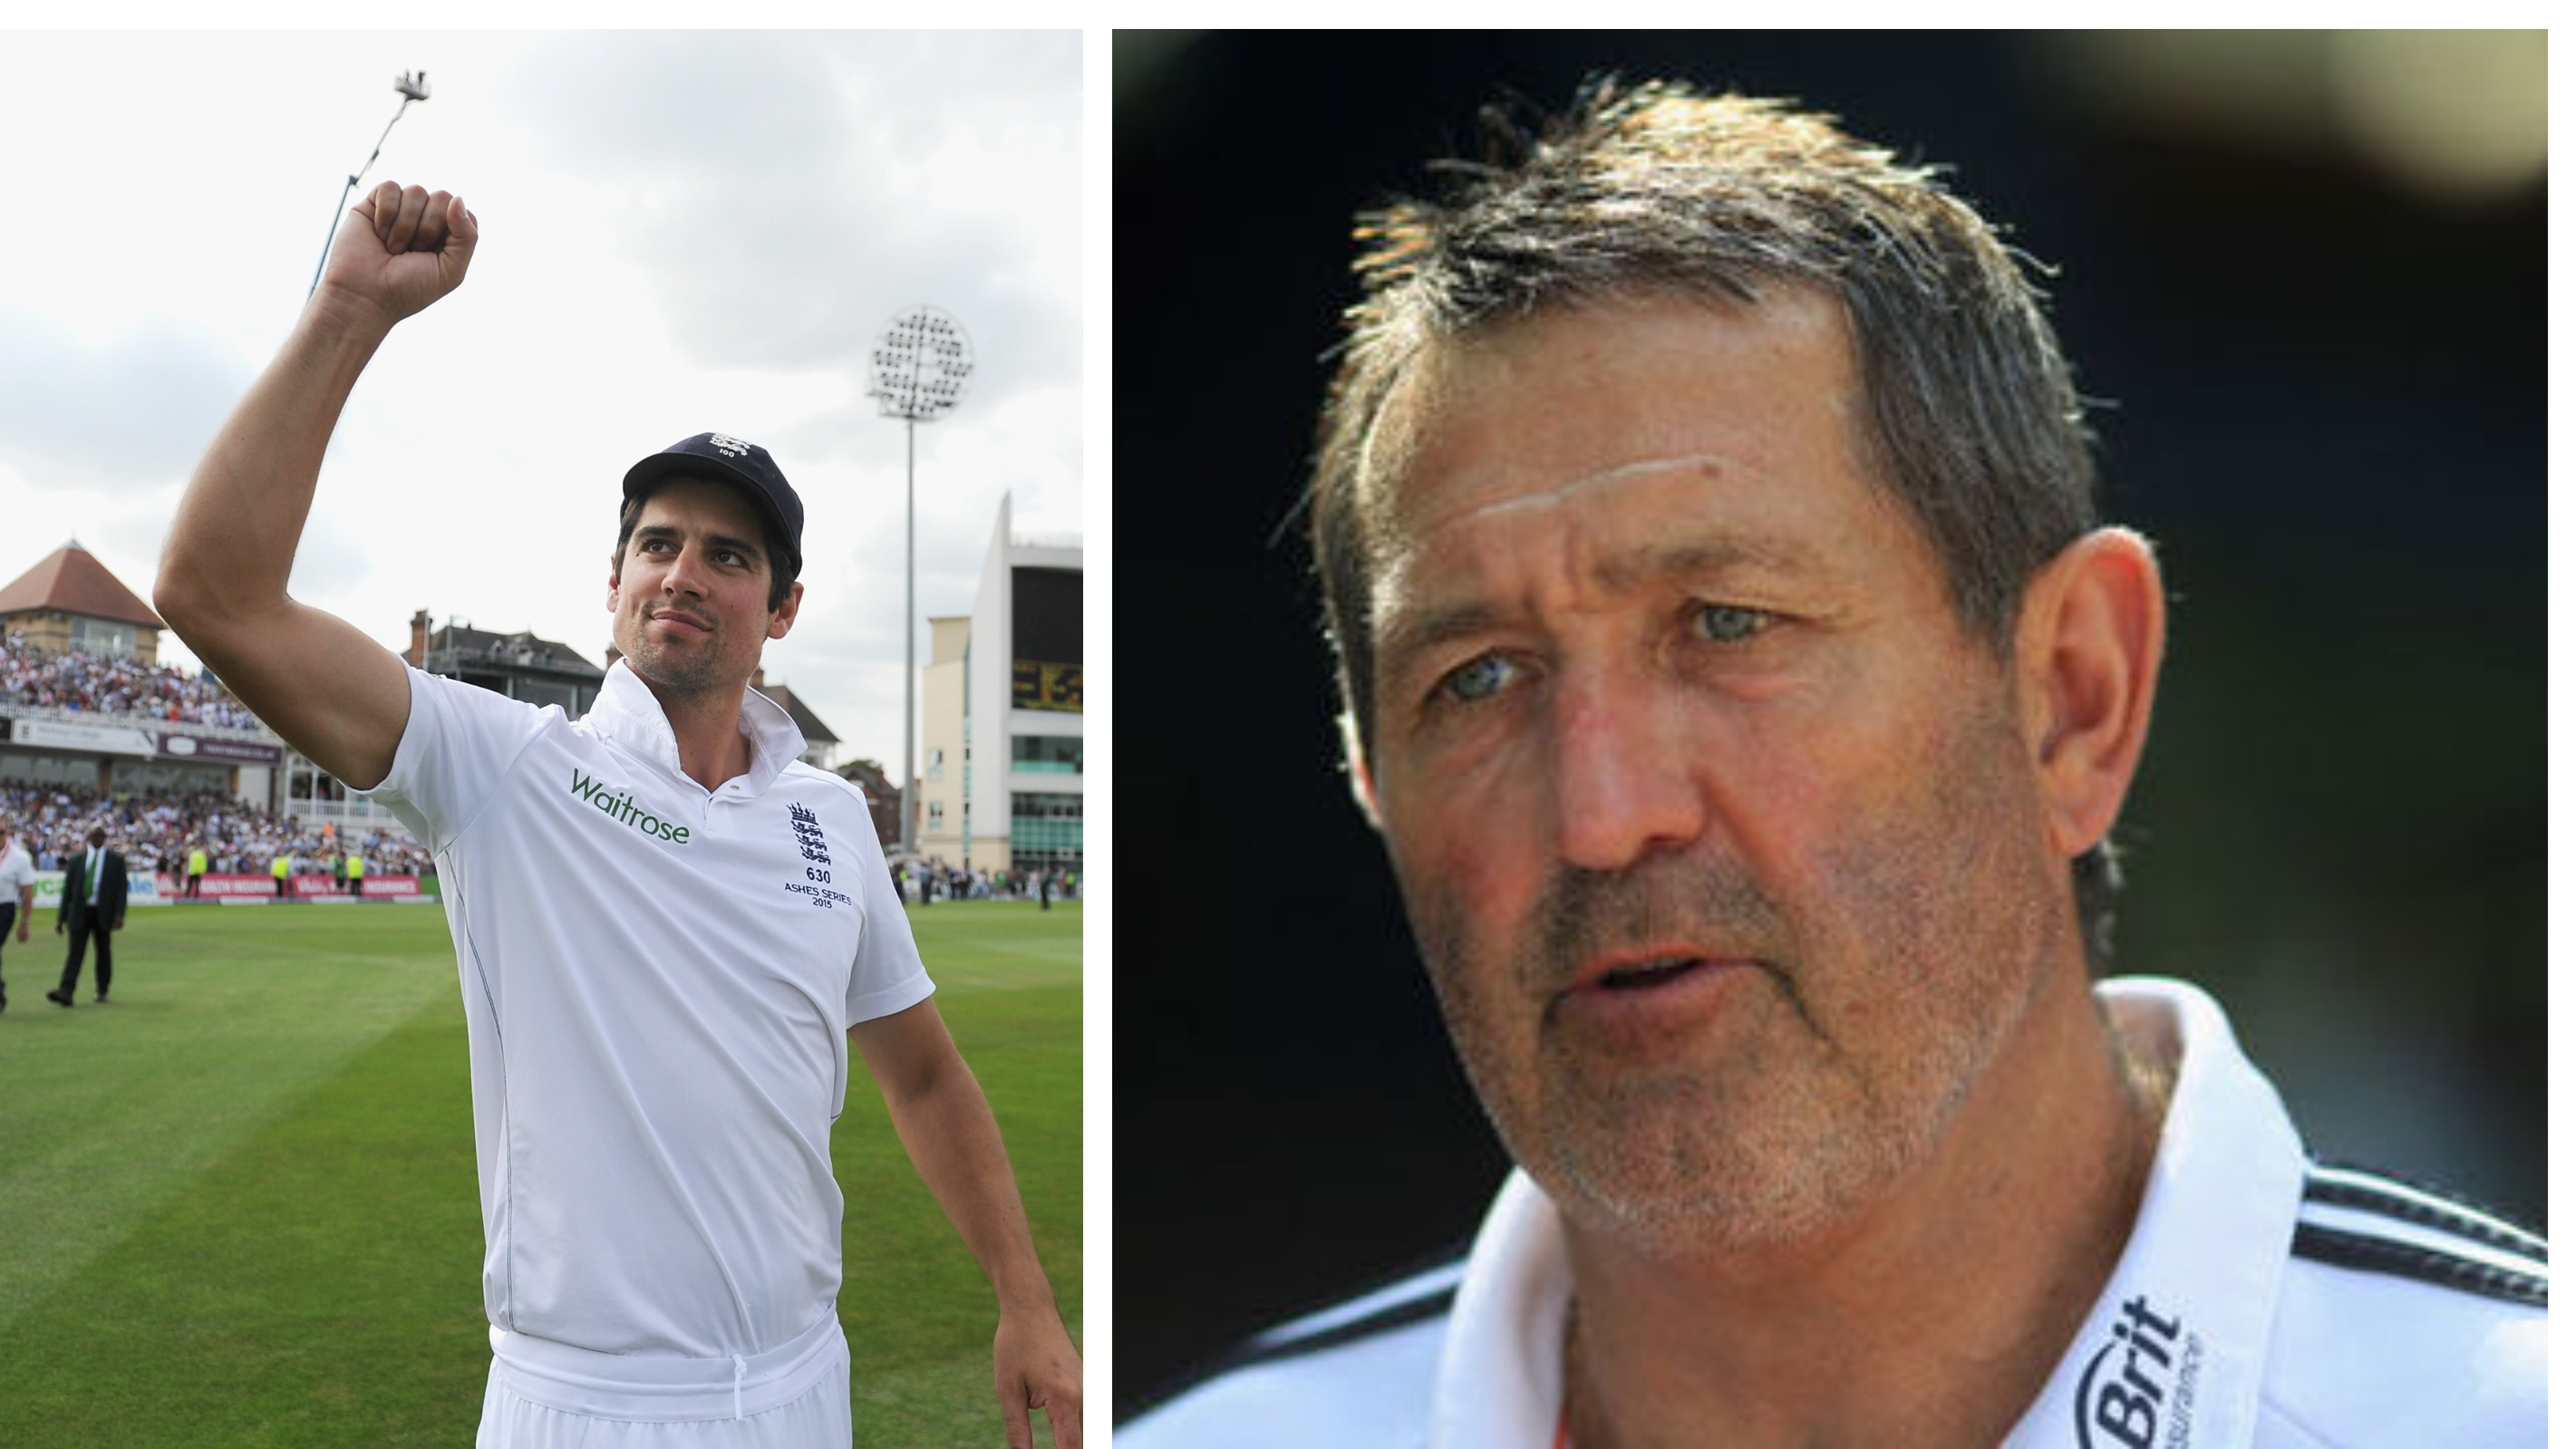 ENG vs IND 2018: A genuine legend of English cricket, says Graham Gooch on Alastair Cook